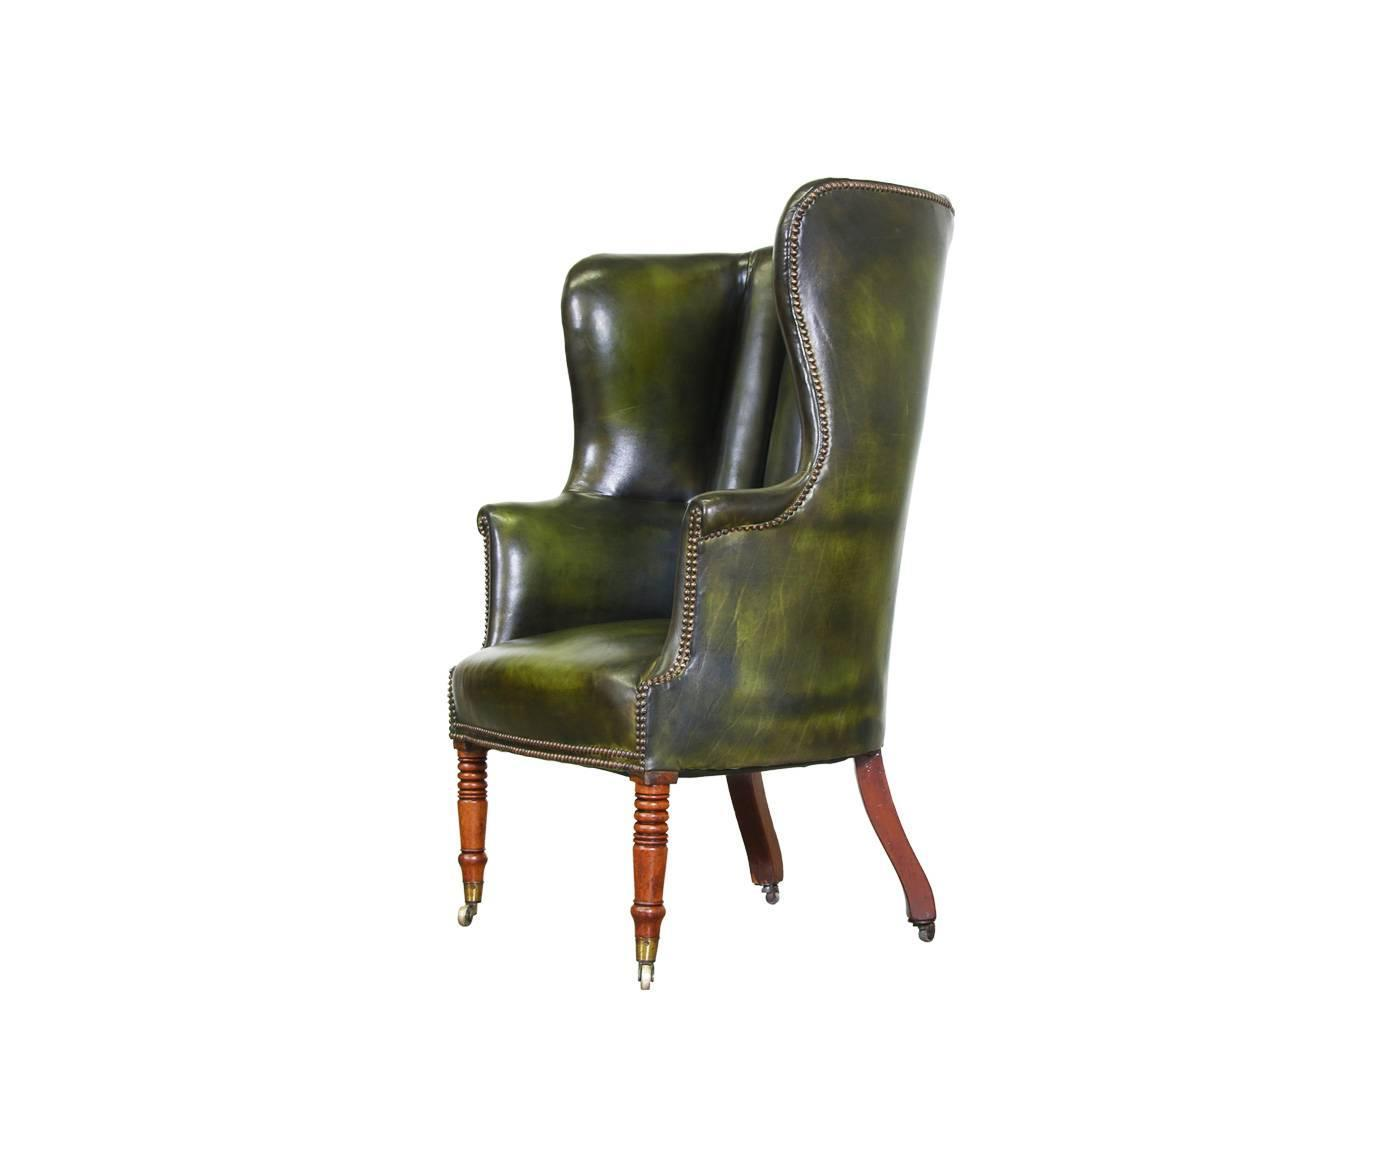 green high chair arsenal inflatable vintage leather back wing at 1stdibs